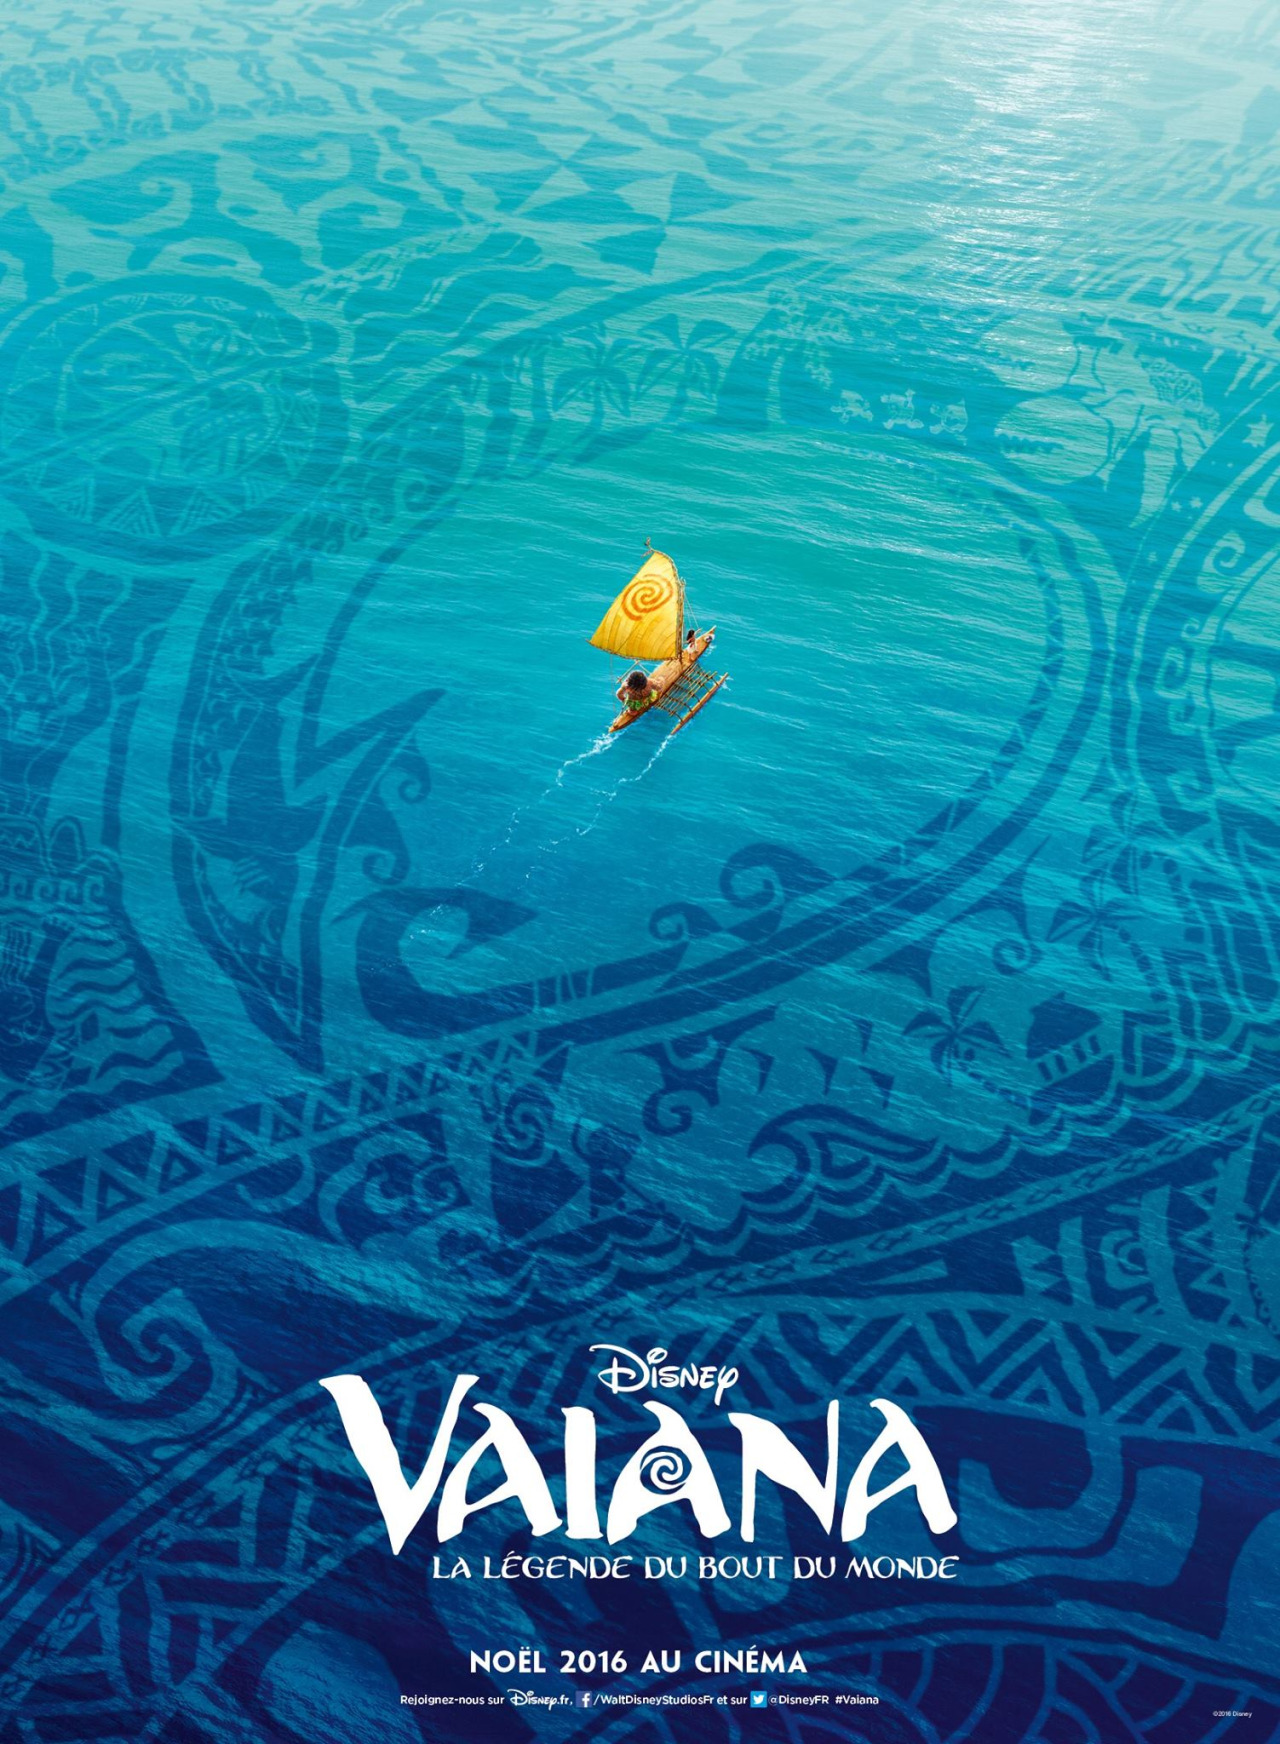 http://vignette4.wikia.nocookie.net/disney/images/f/f9/Moana_French_Poster.jpg/revision/latest?cb=20160619221240